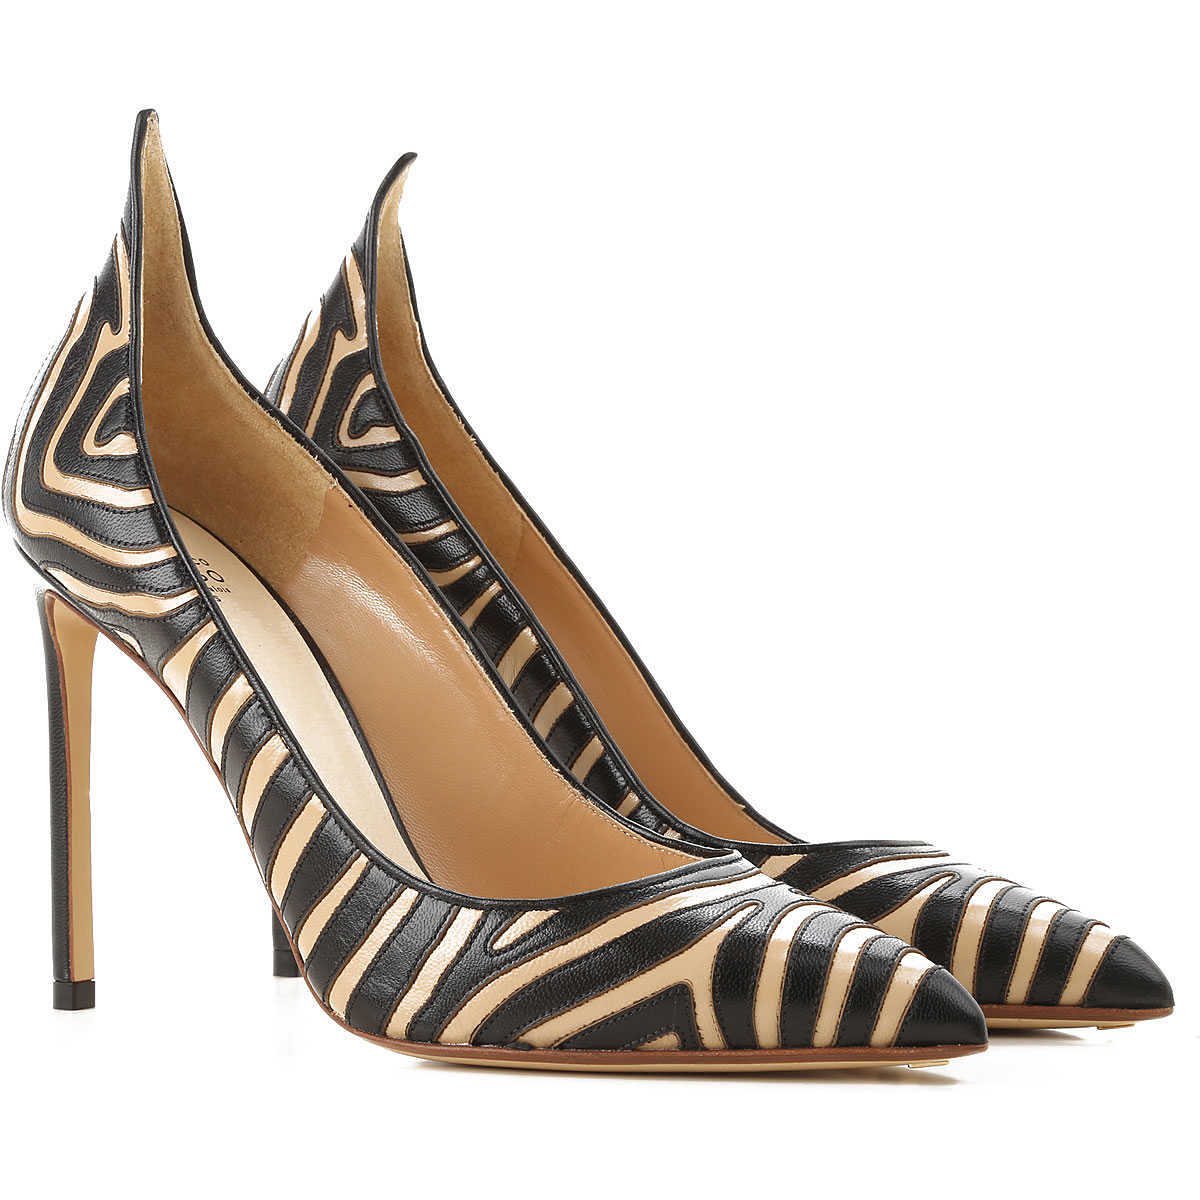 Francesco Russo Pumps & High Heels for Women in Outlet Sand Canada - GOOFASH - Womens PUMPS